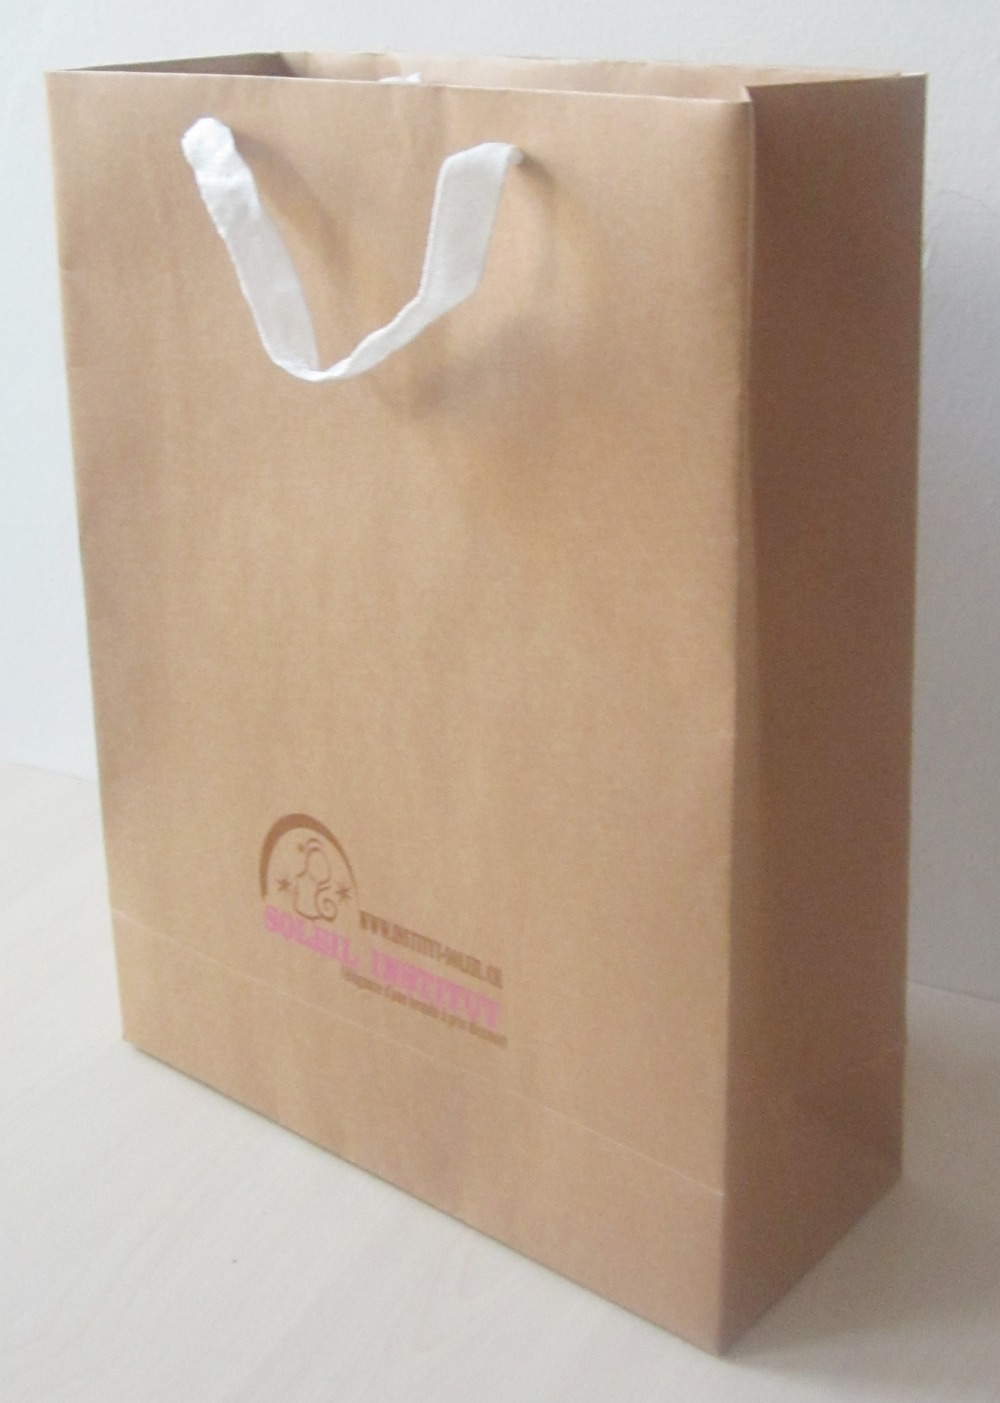 40*30*12cm 200pcs/lot art paper bag nature color with logo,free shipping brown tote bag,shopping bag craft paper,200g(China (Mainland))